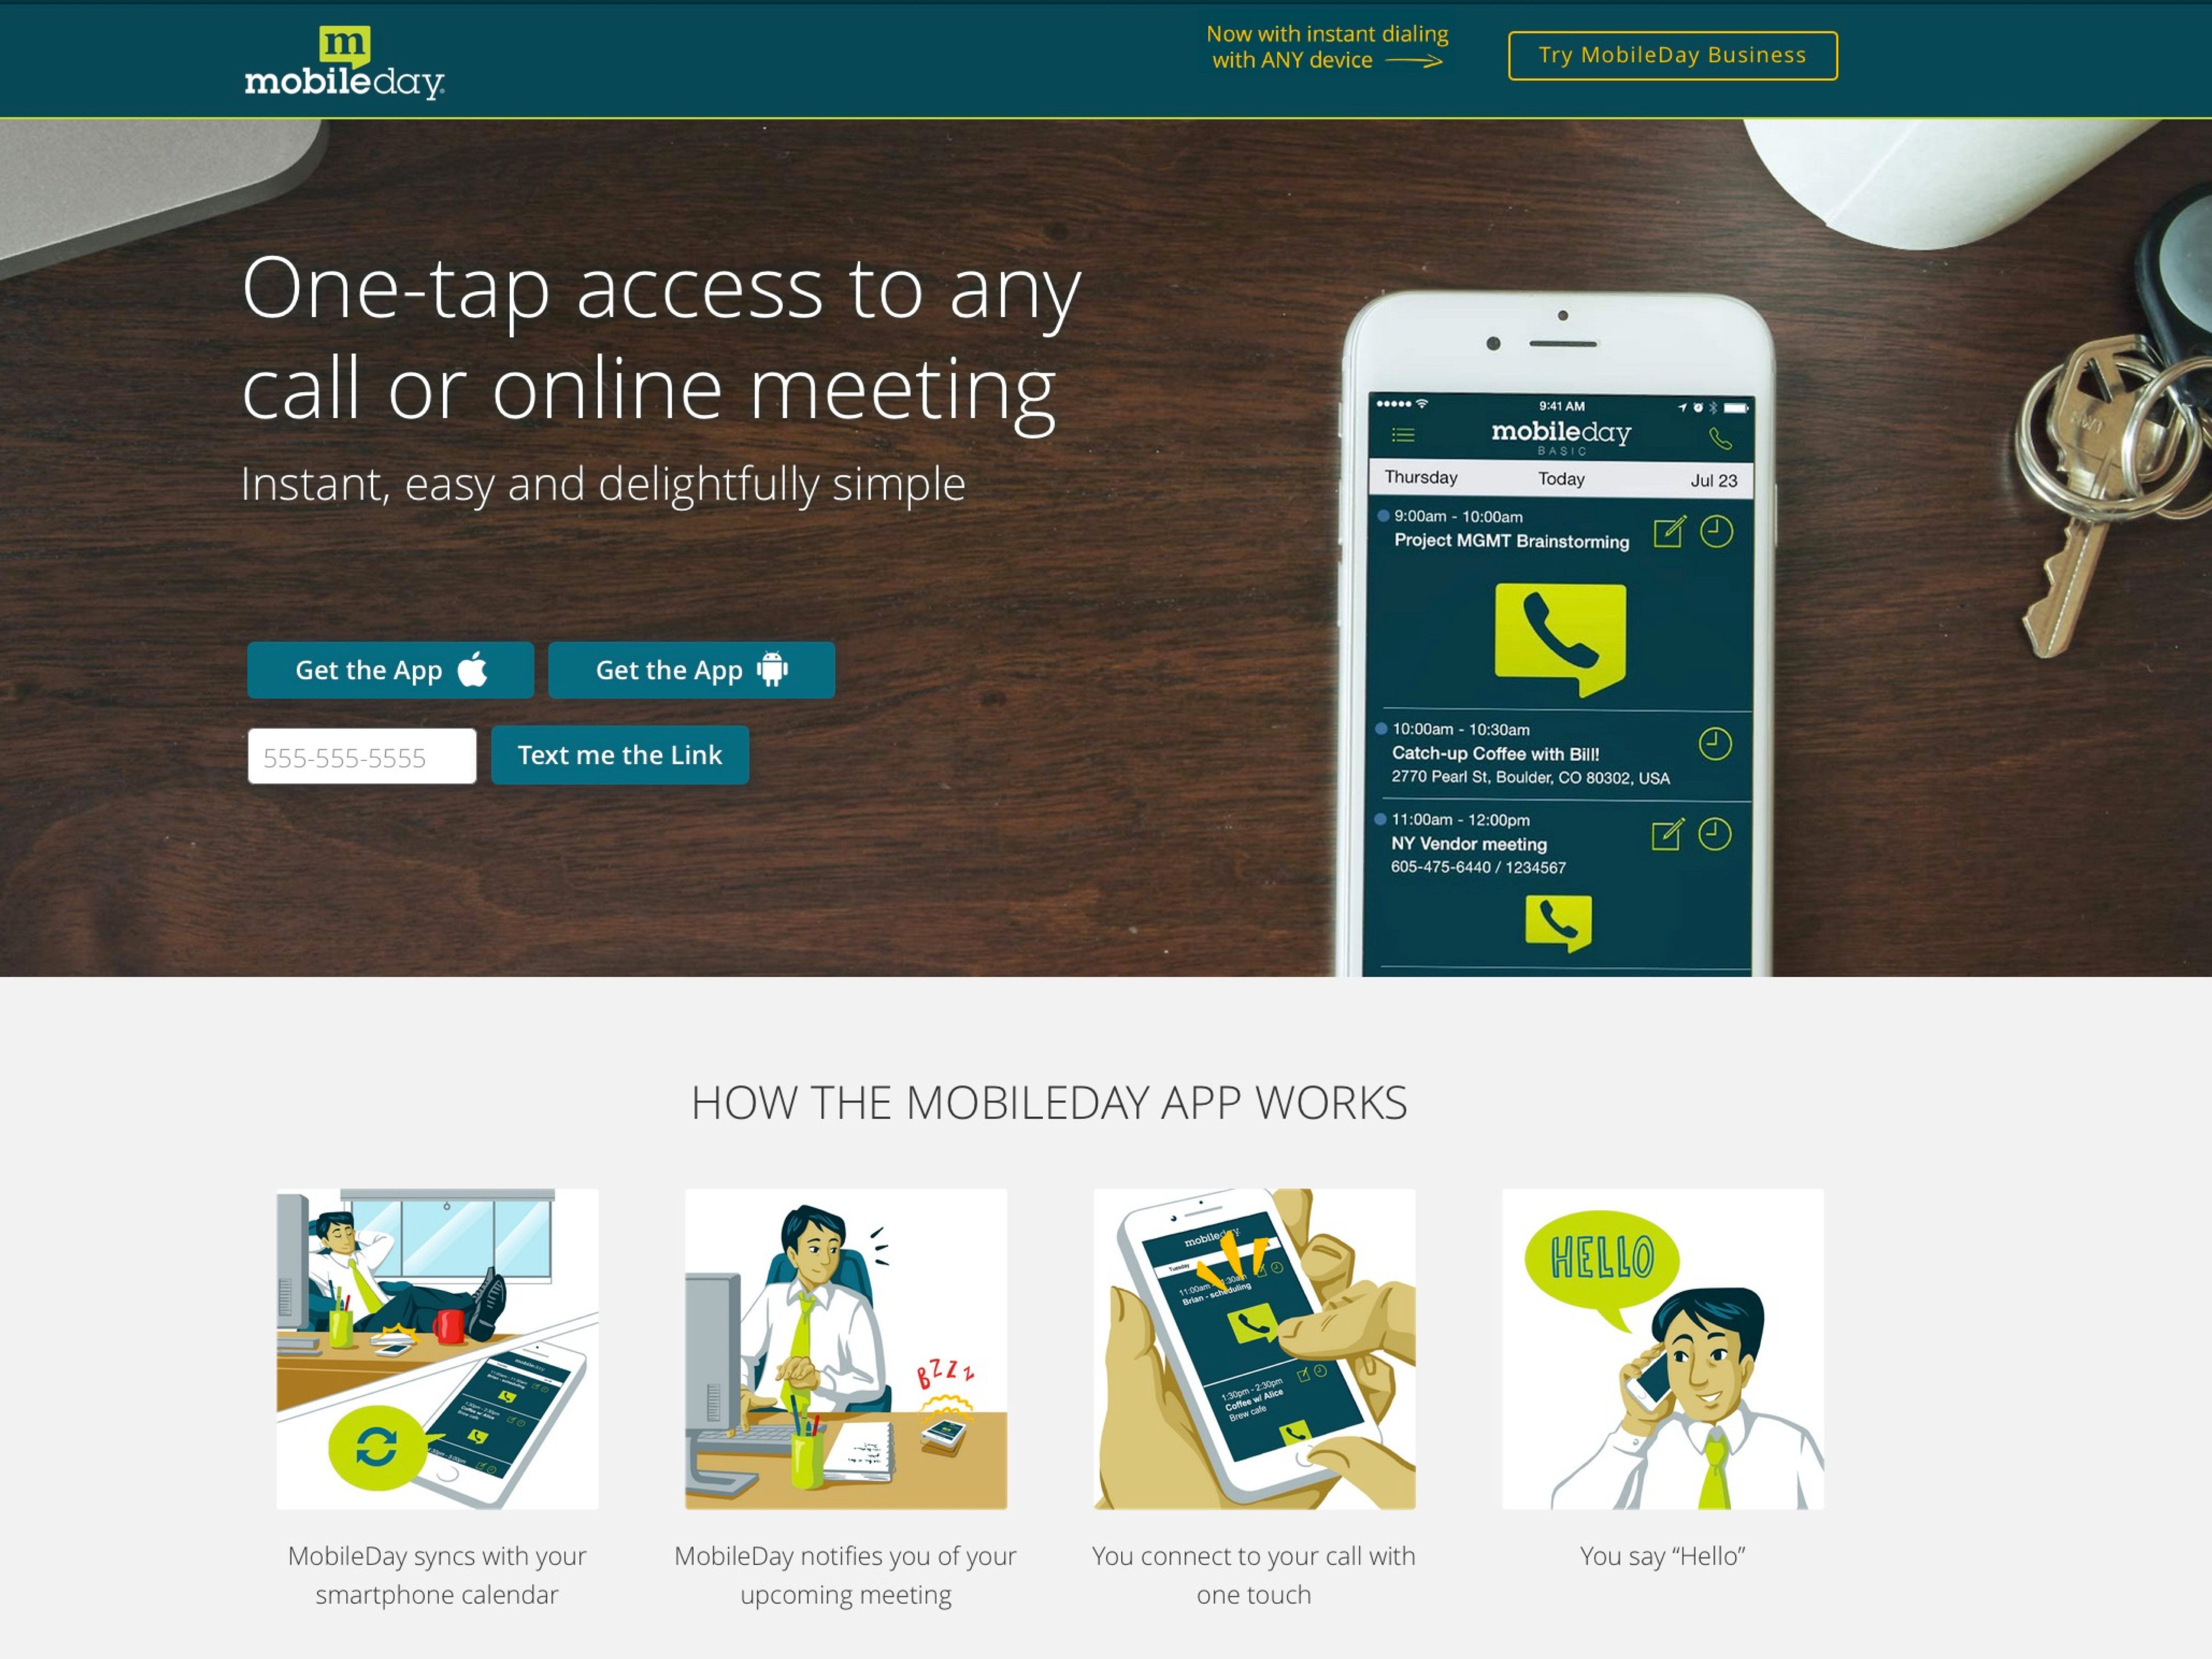 Mobileday -  One-tap access to any call or online meeting